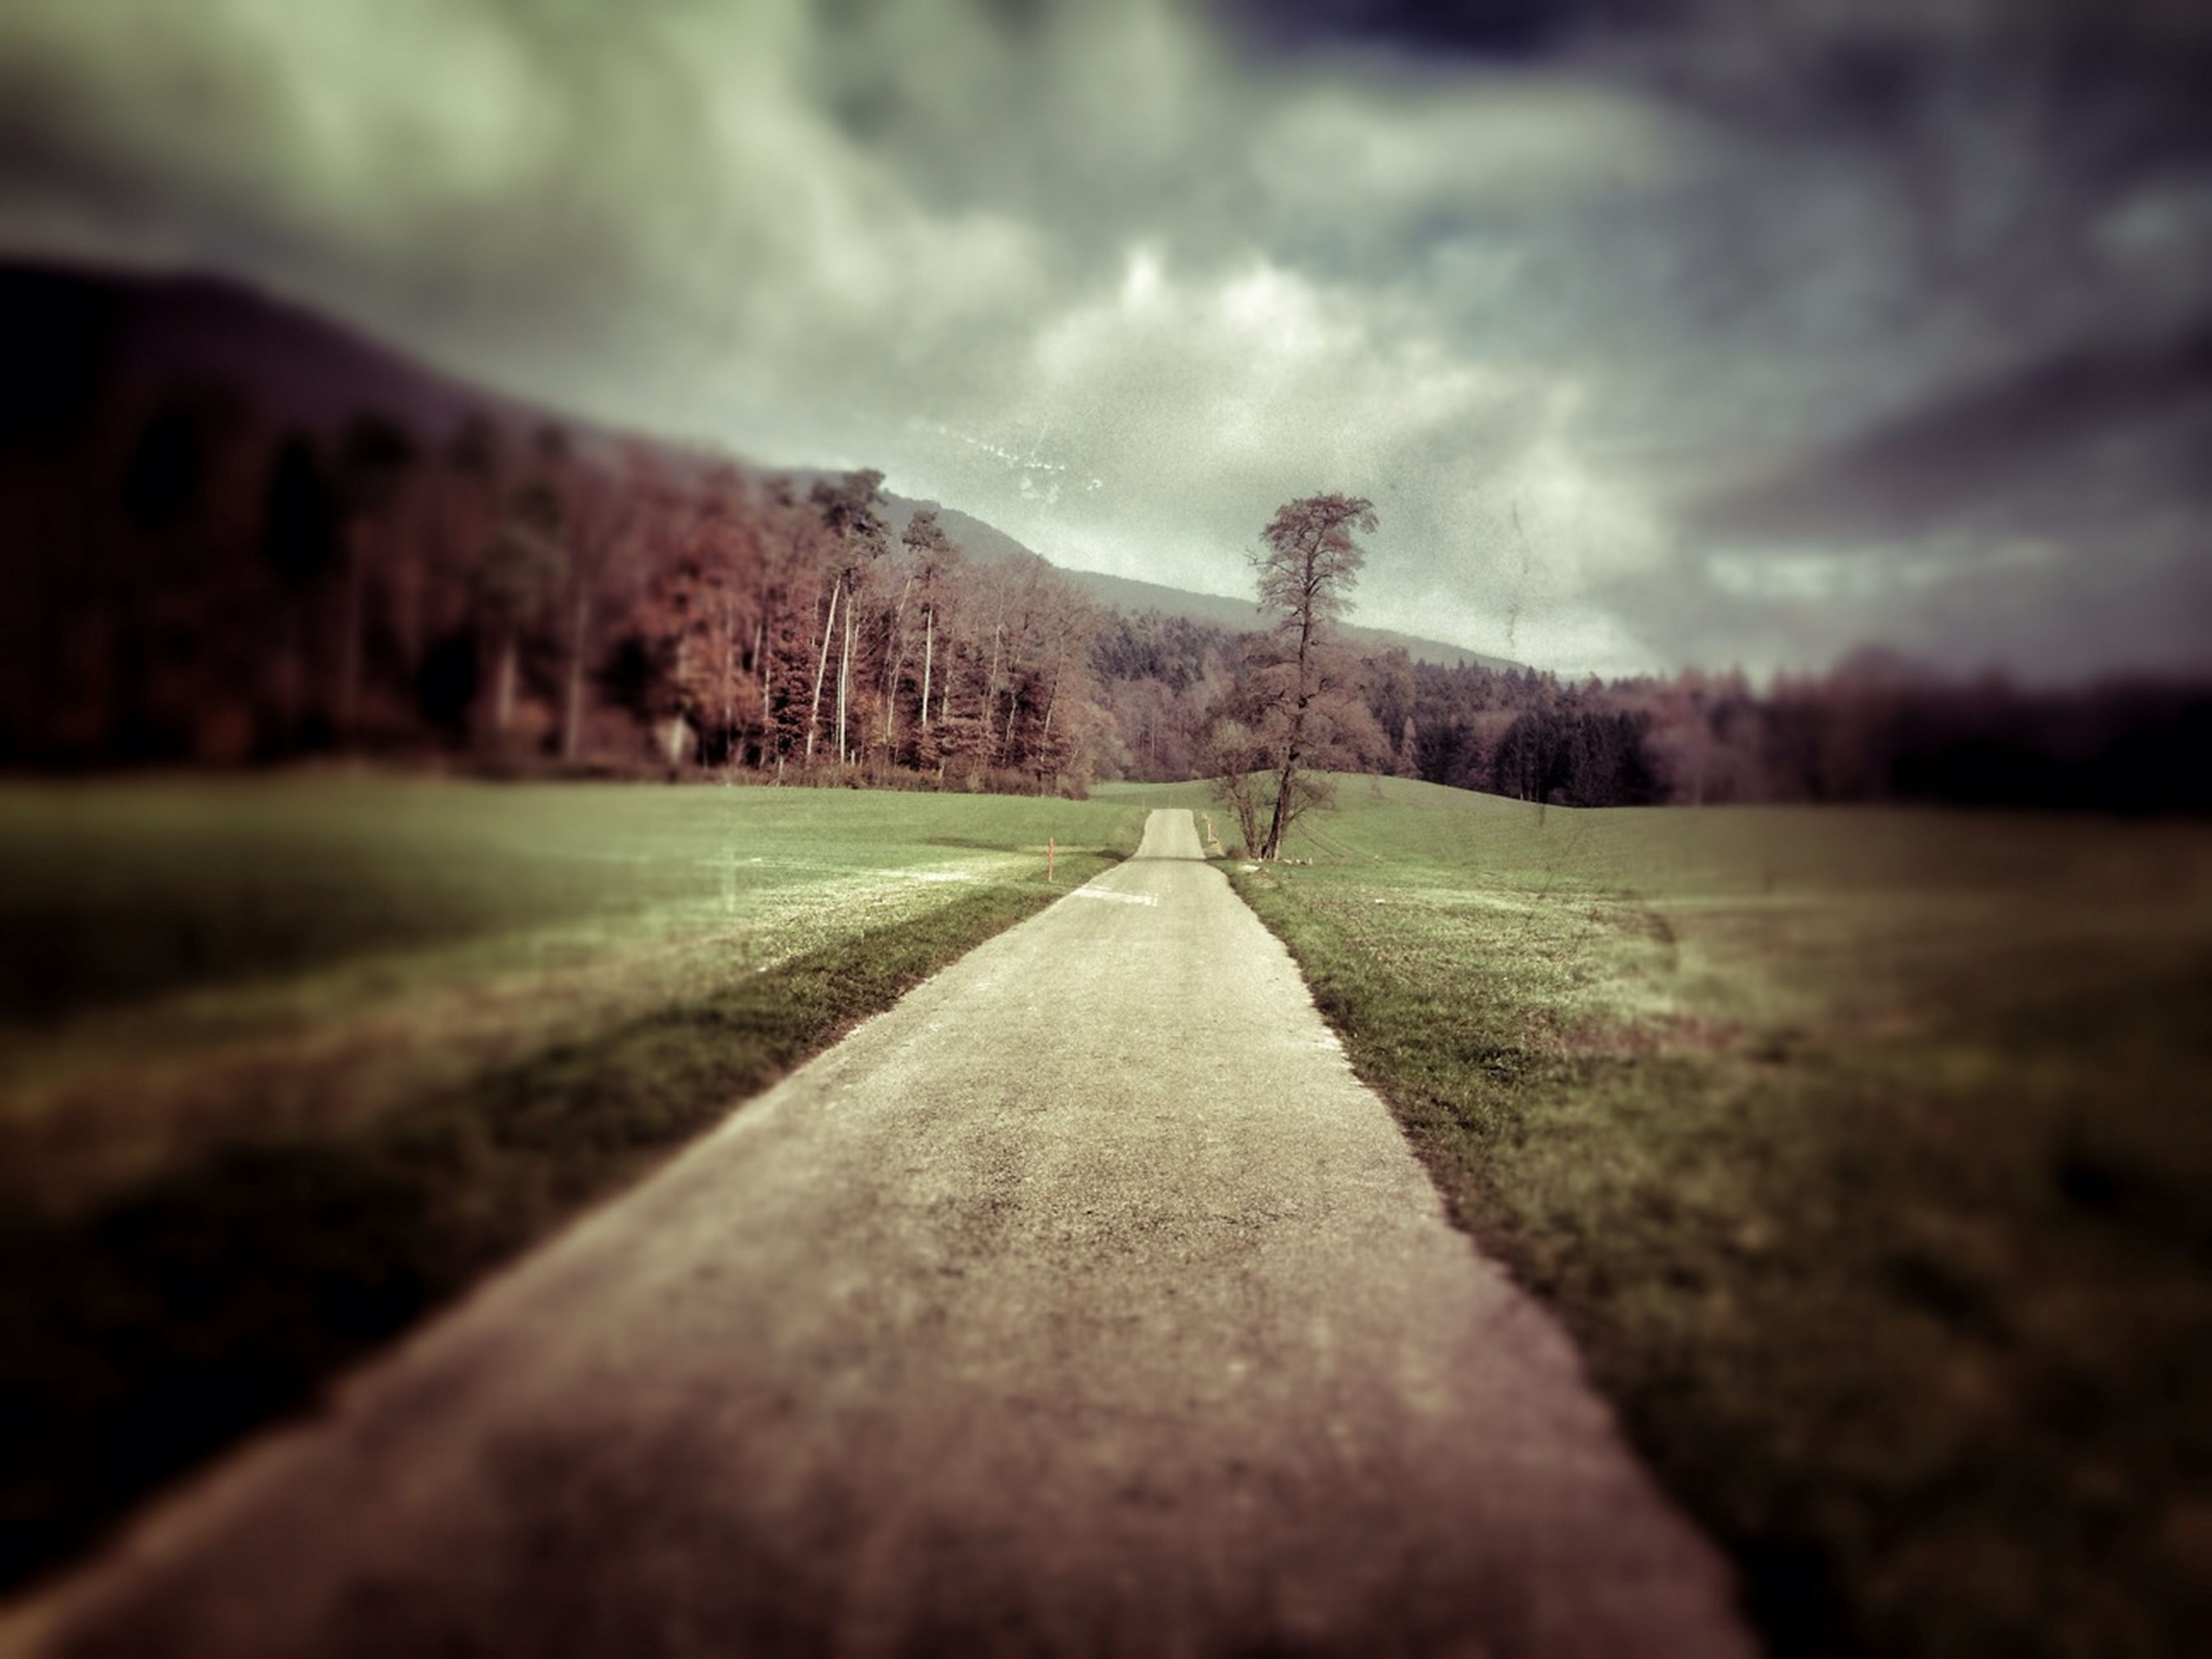 sky, landscape, the way forward, cloud - sky, tranquility, tranquil scene, cloudy, grass, field, dirt road, nature, surface level, cloud, scenics, diminishing perspective, mountain, beauty in nature, weather, selective focus, non-urban scene